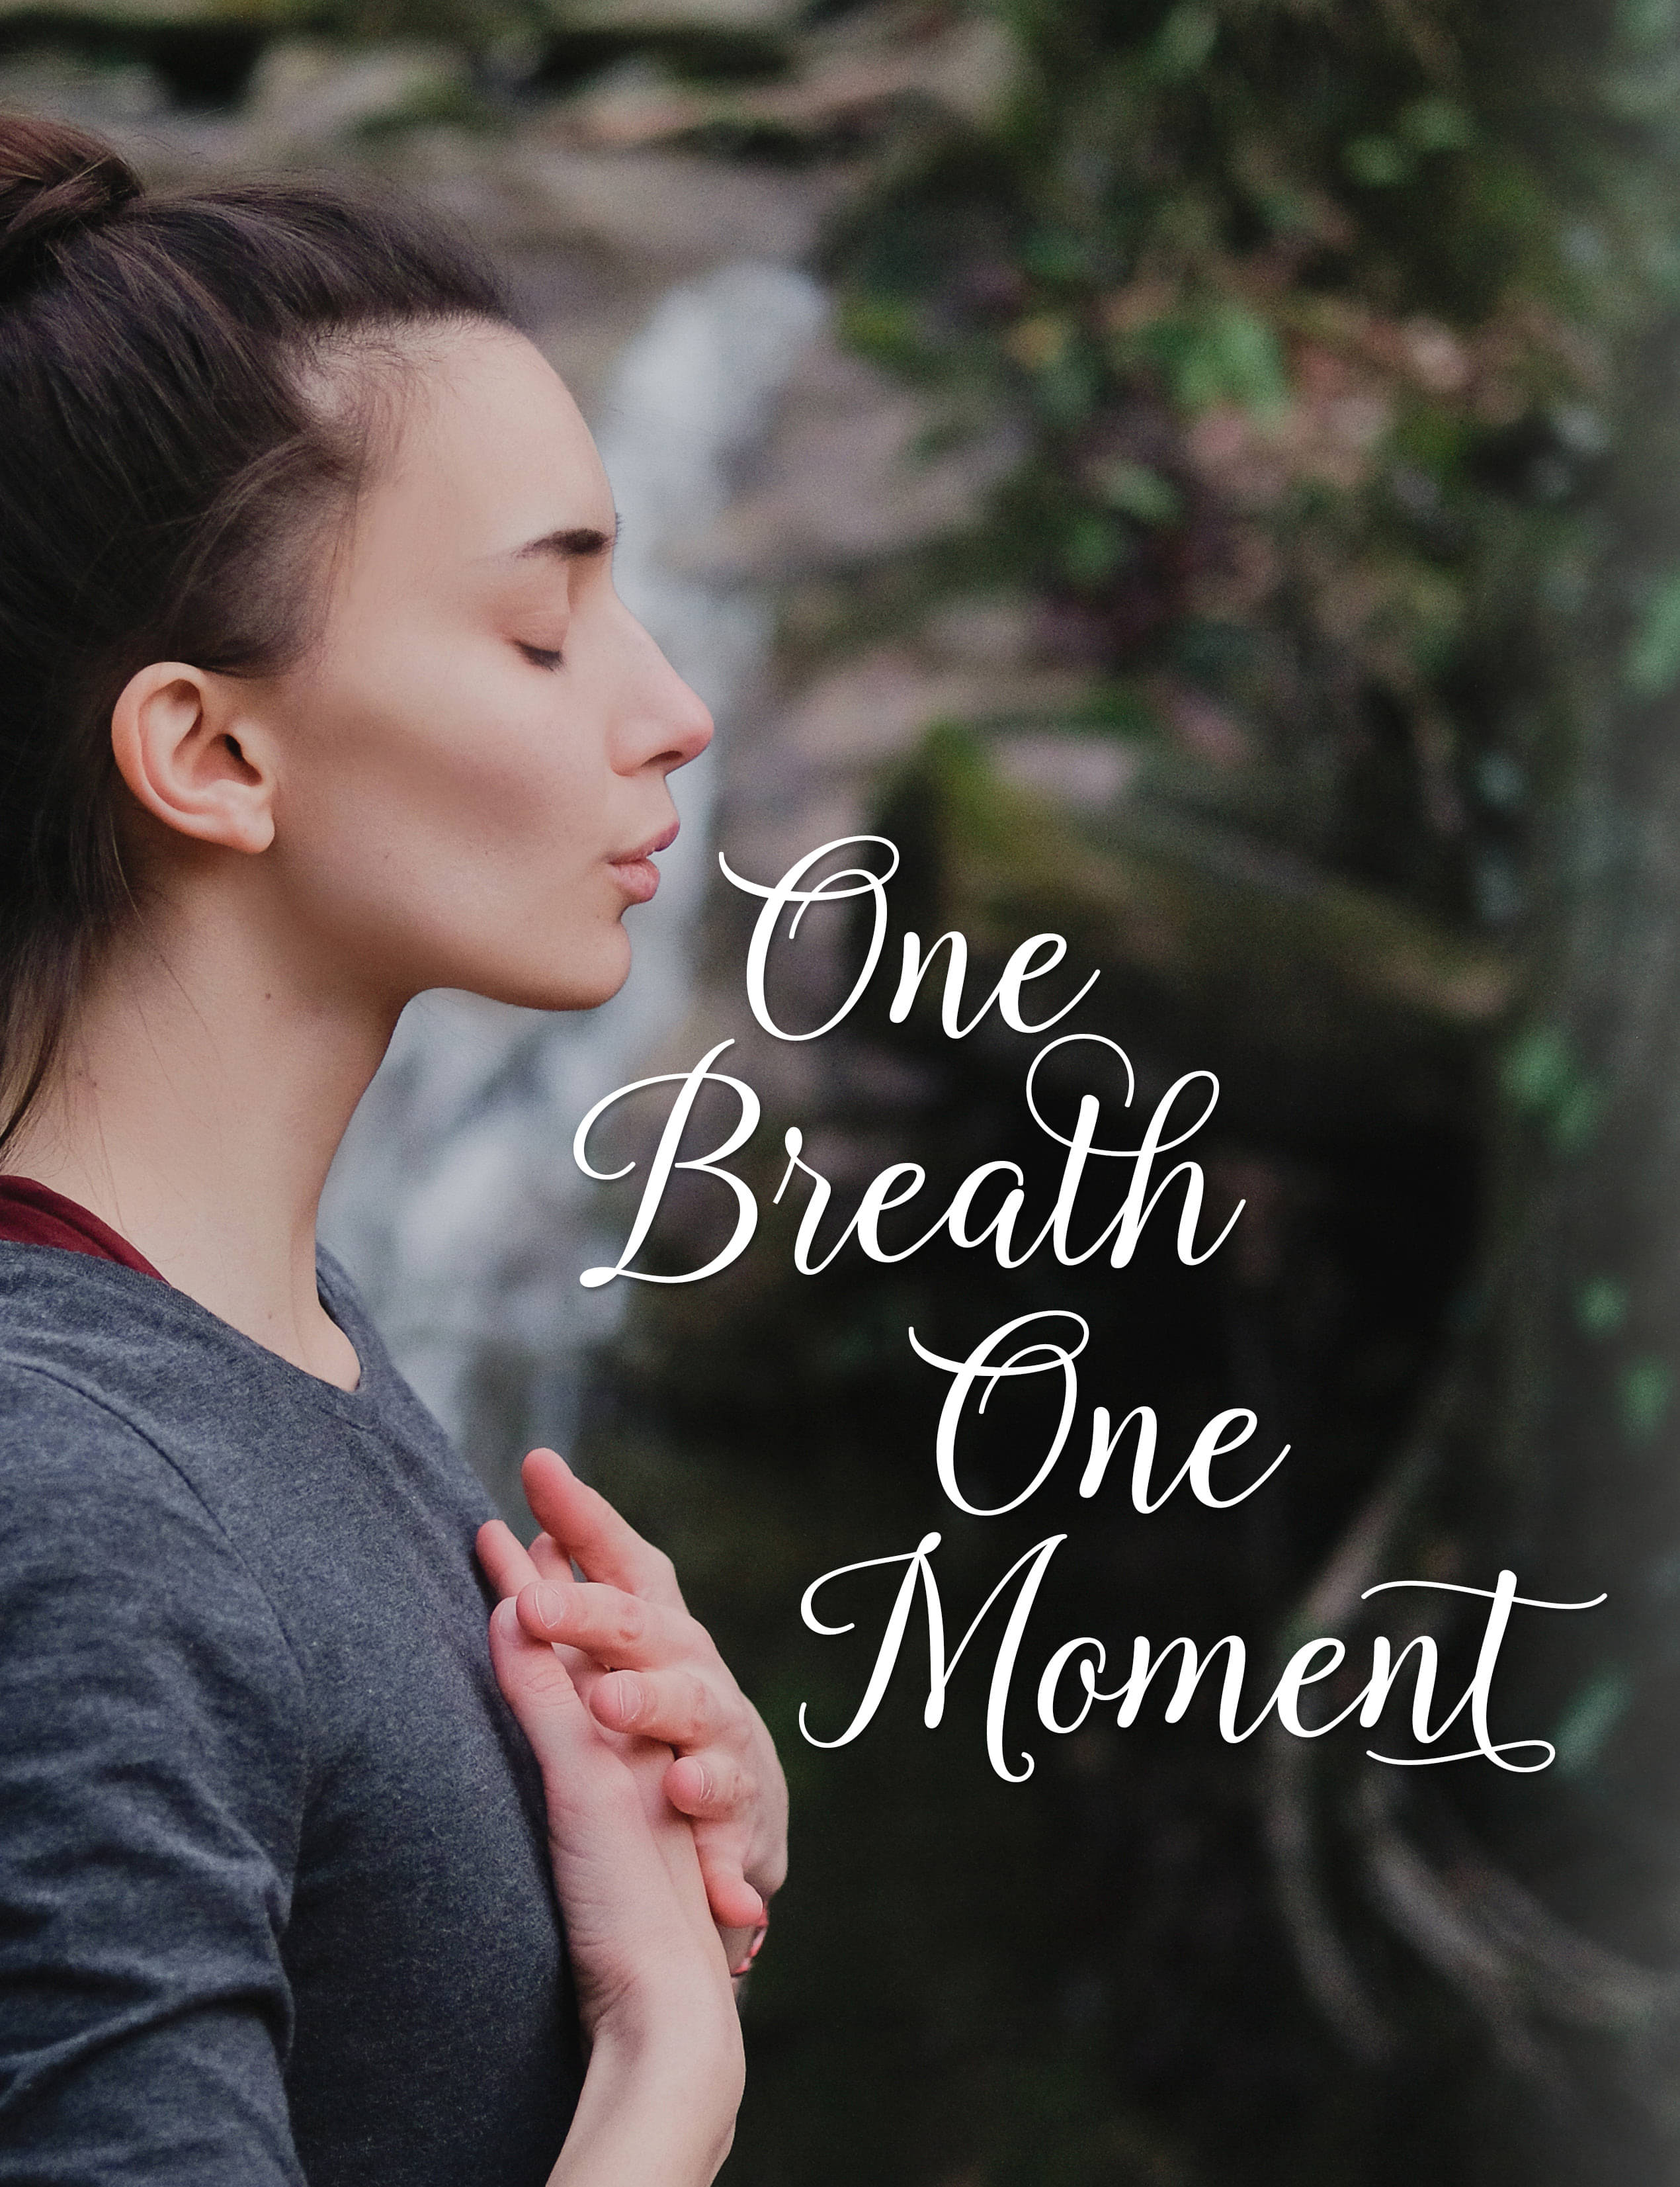 One breath one moment